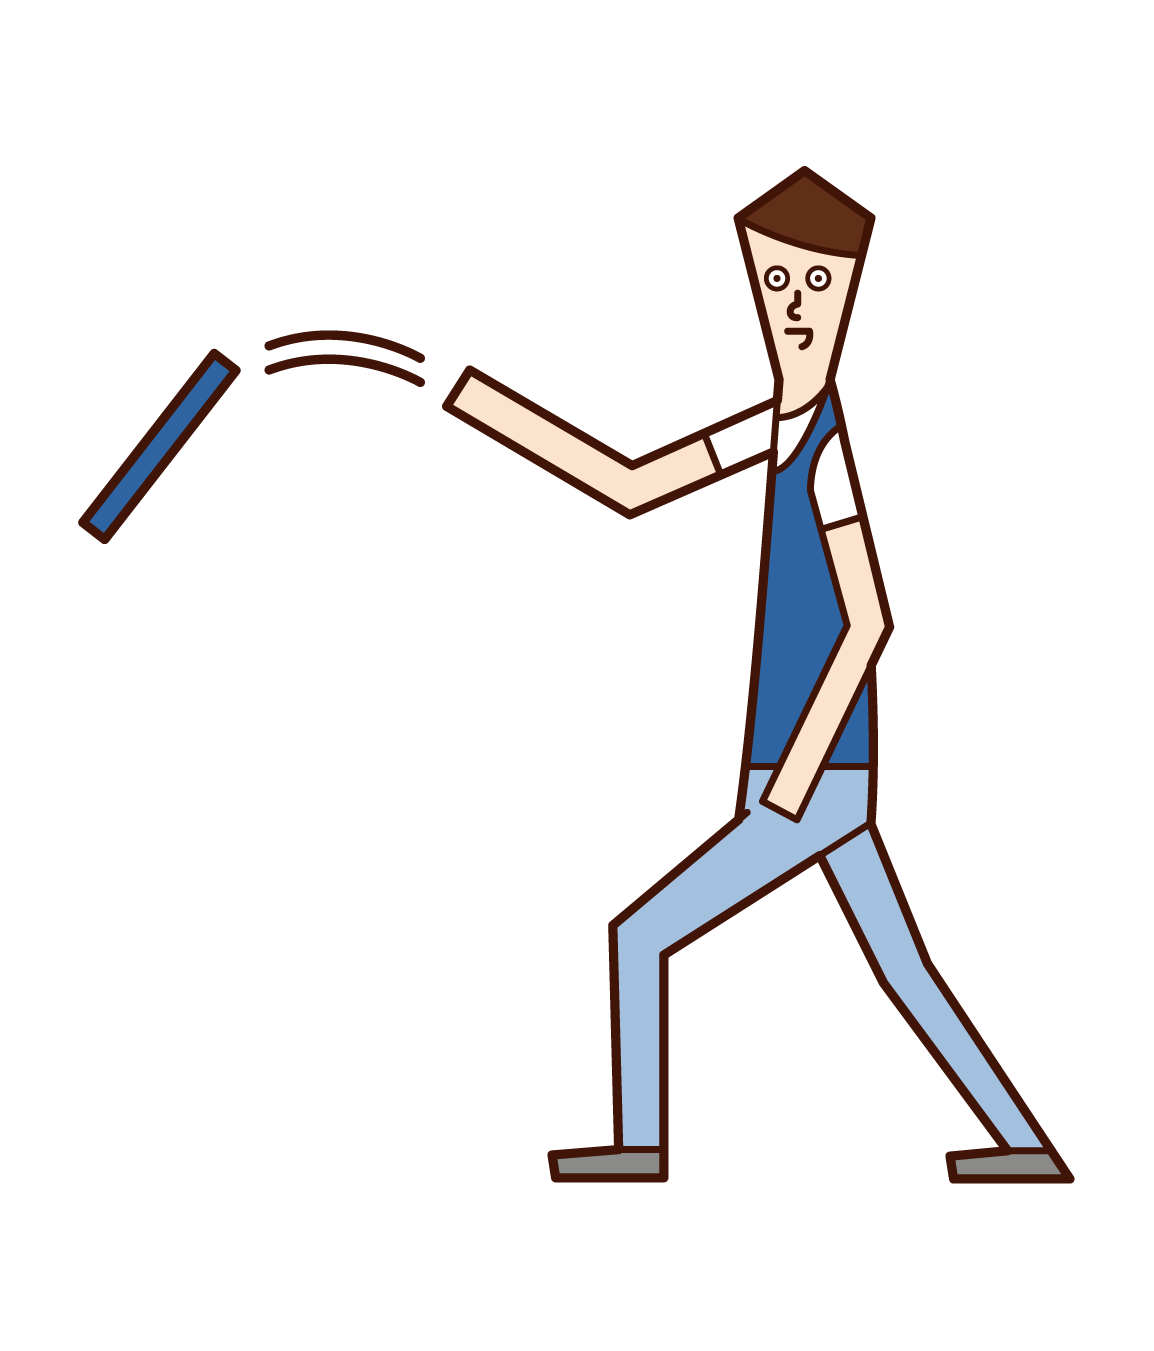 Illustration of a man throwing a rod